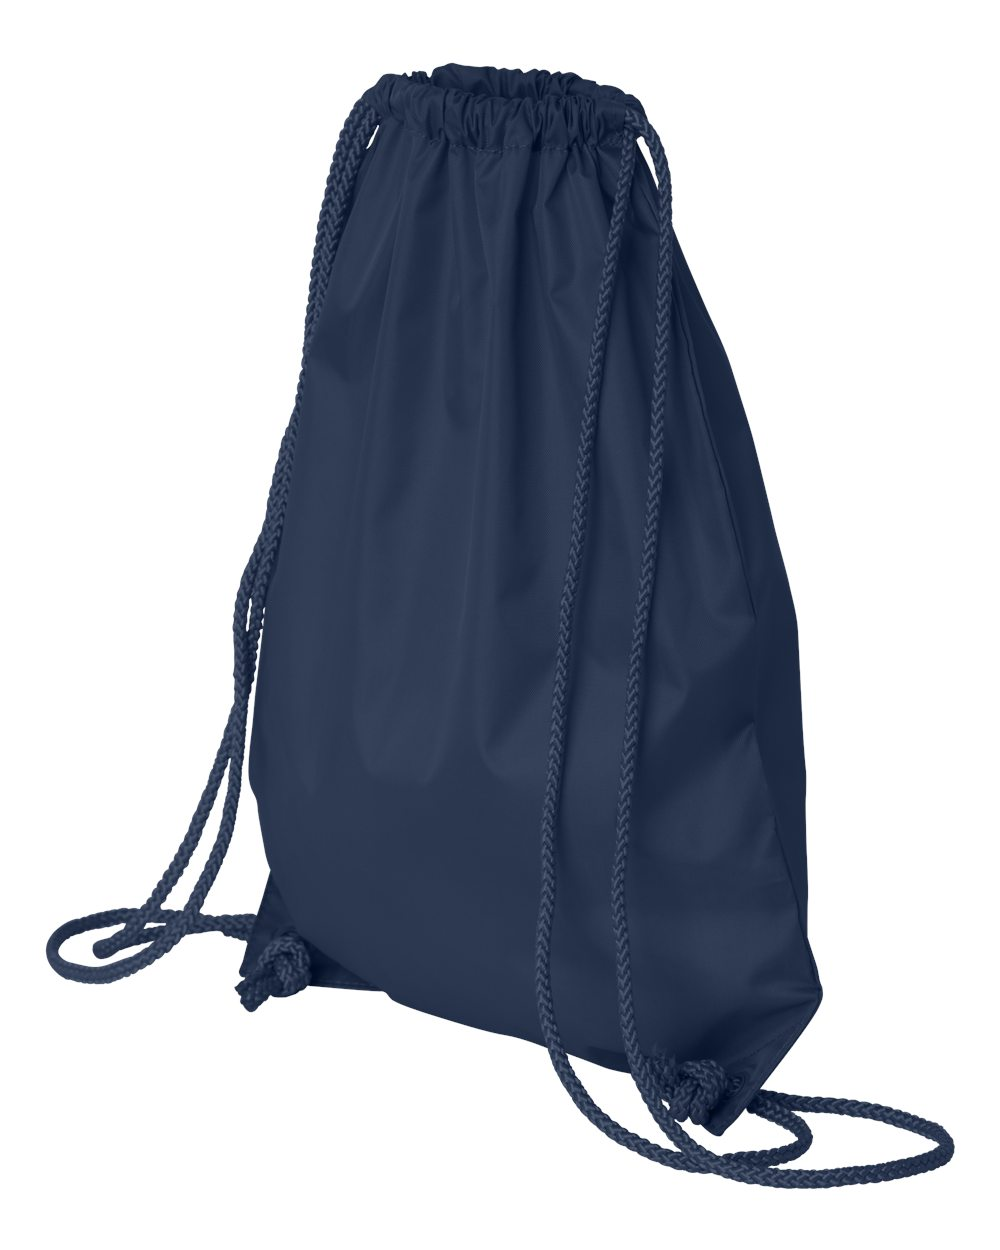 Liberty Bags - Drawstring Sacpack with DUROcord